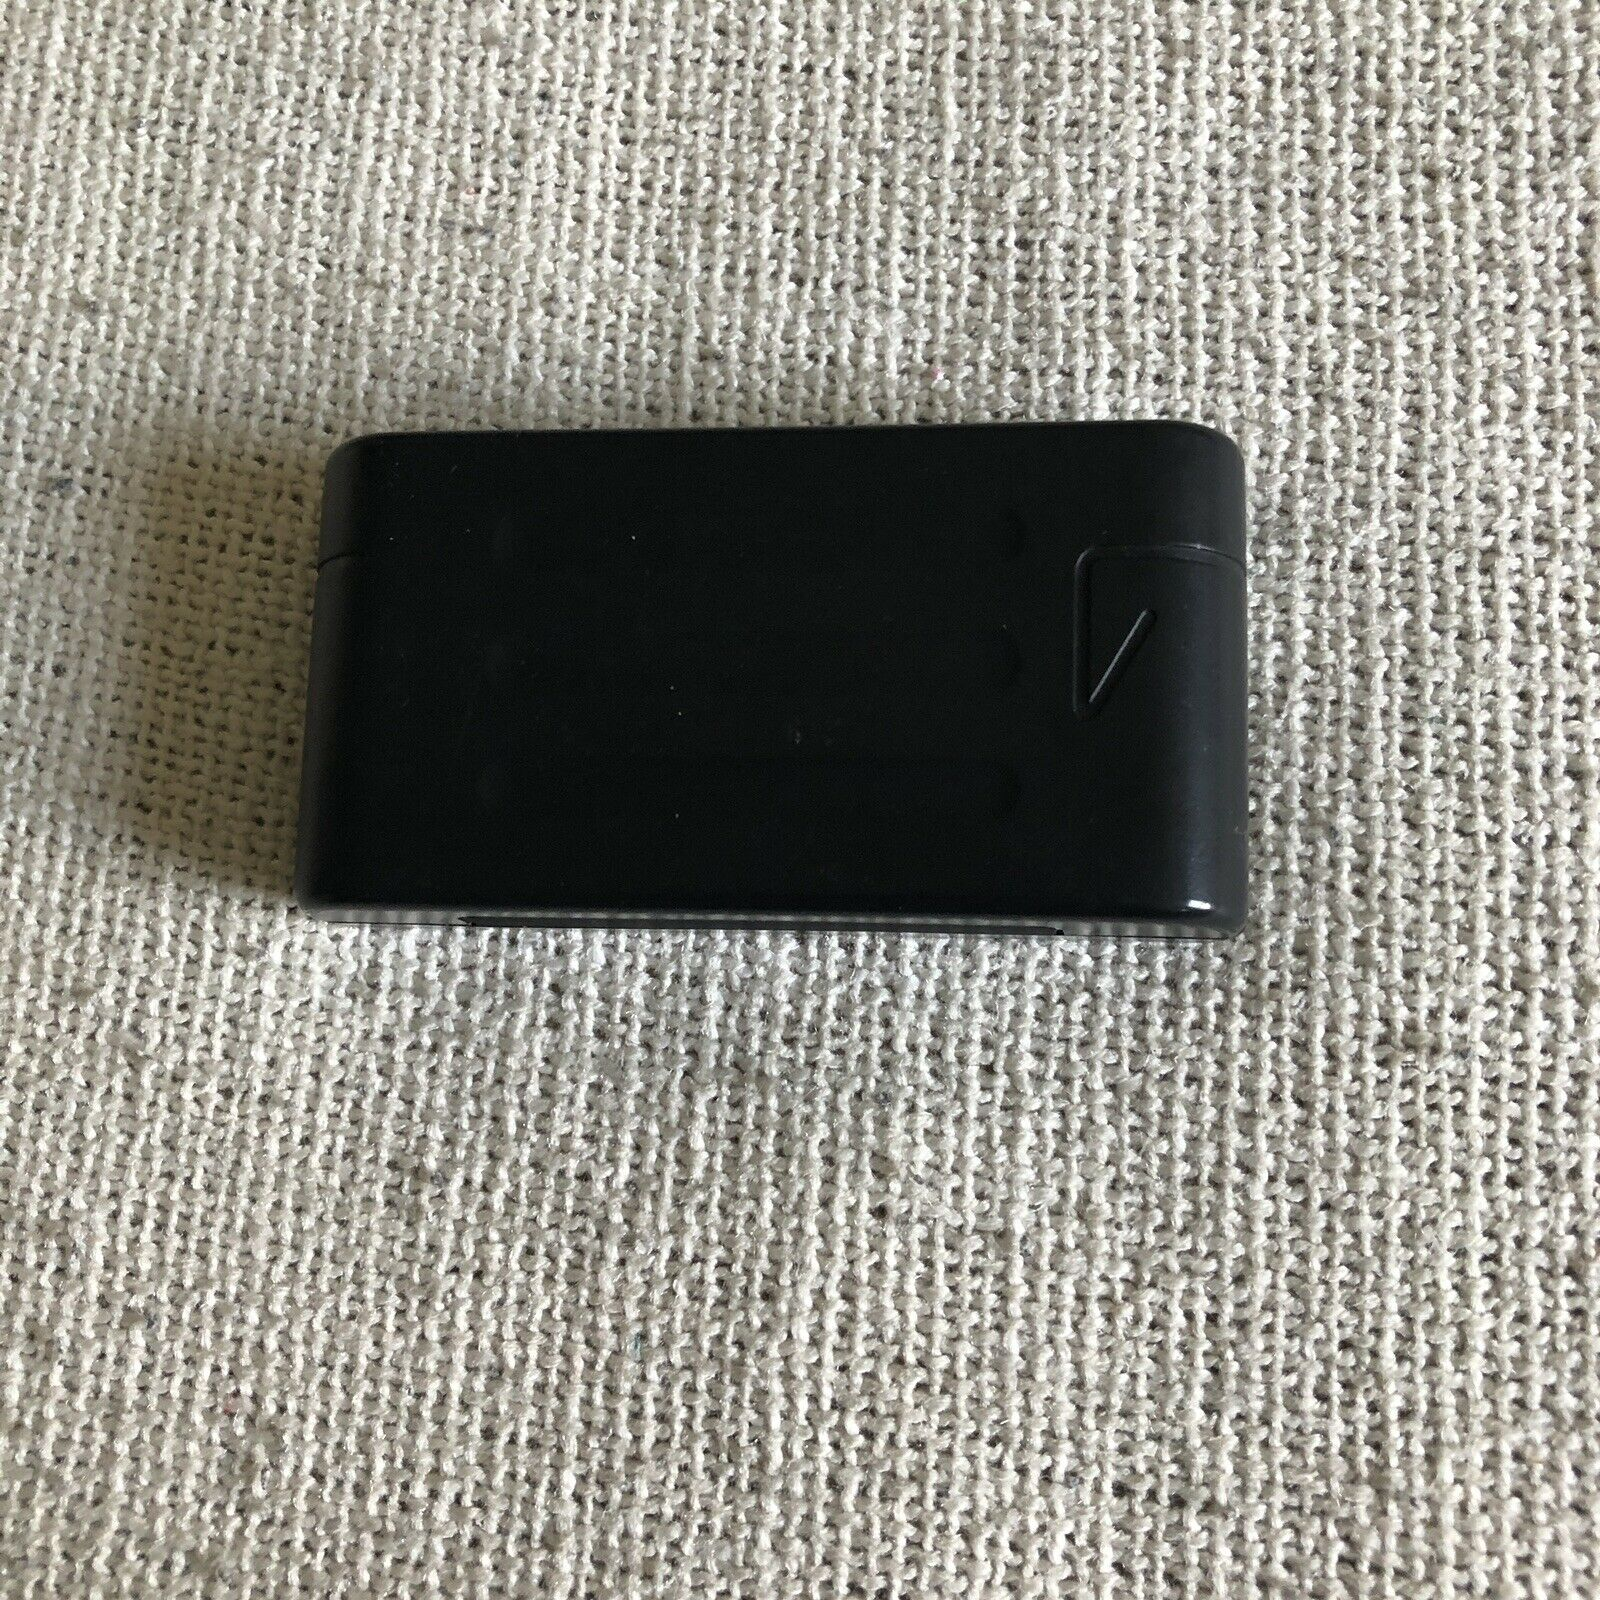 Original Samsung Rechargeable Battery Pack NB-E70 For Camcorder Made in Korea